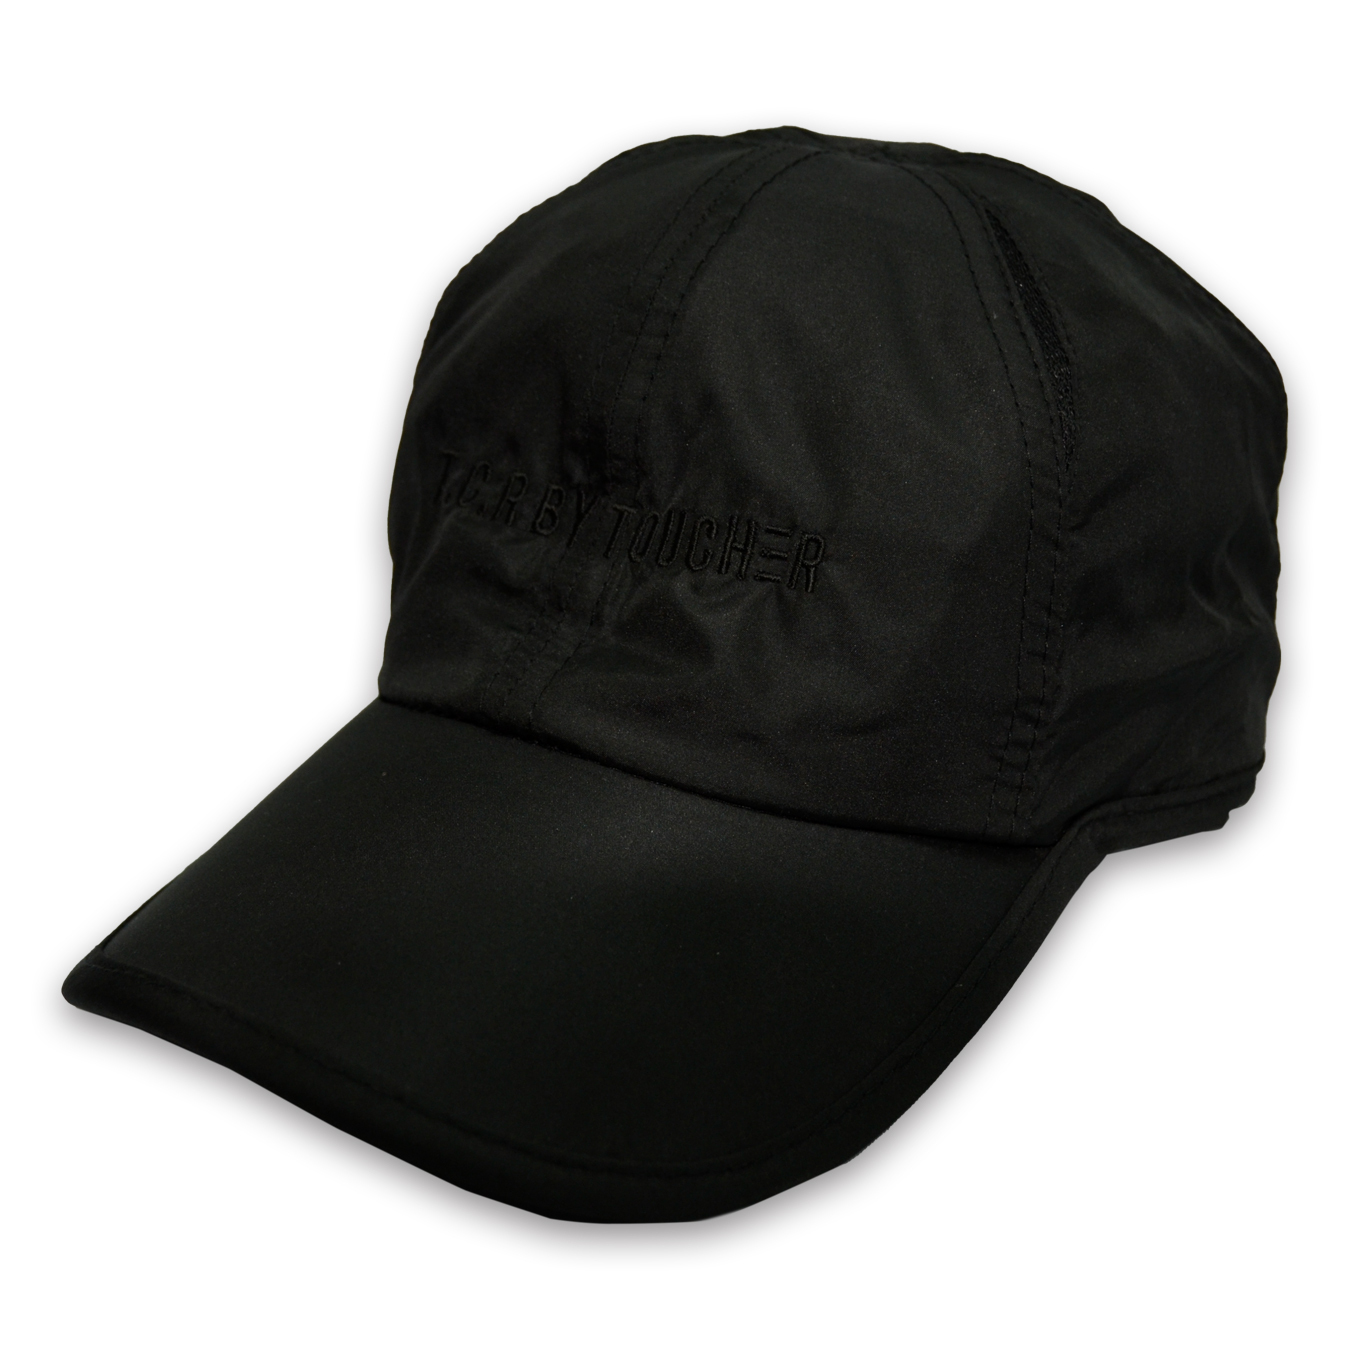 T.C.R LOGO SPORTS SHELL CAP - BLACK/BLACK